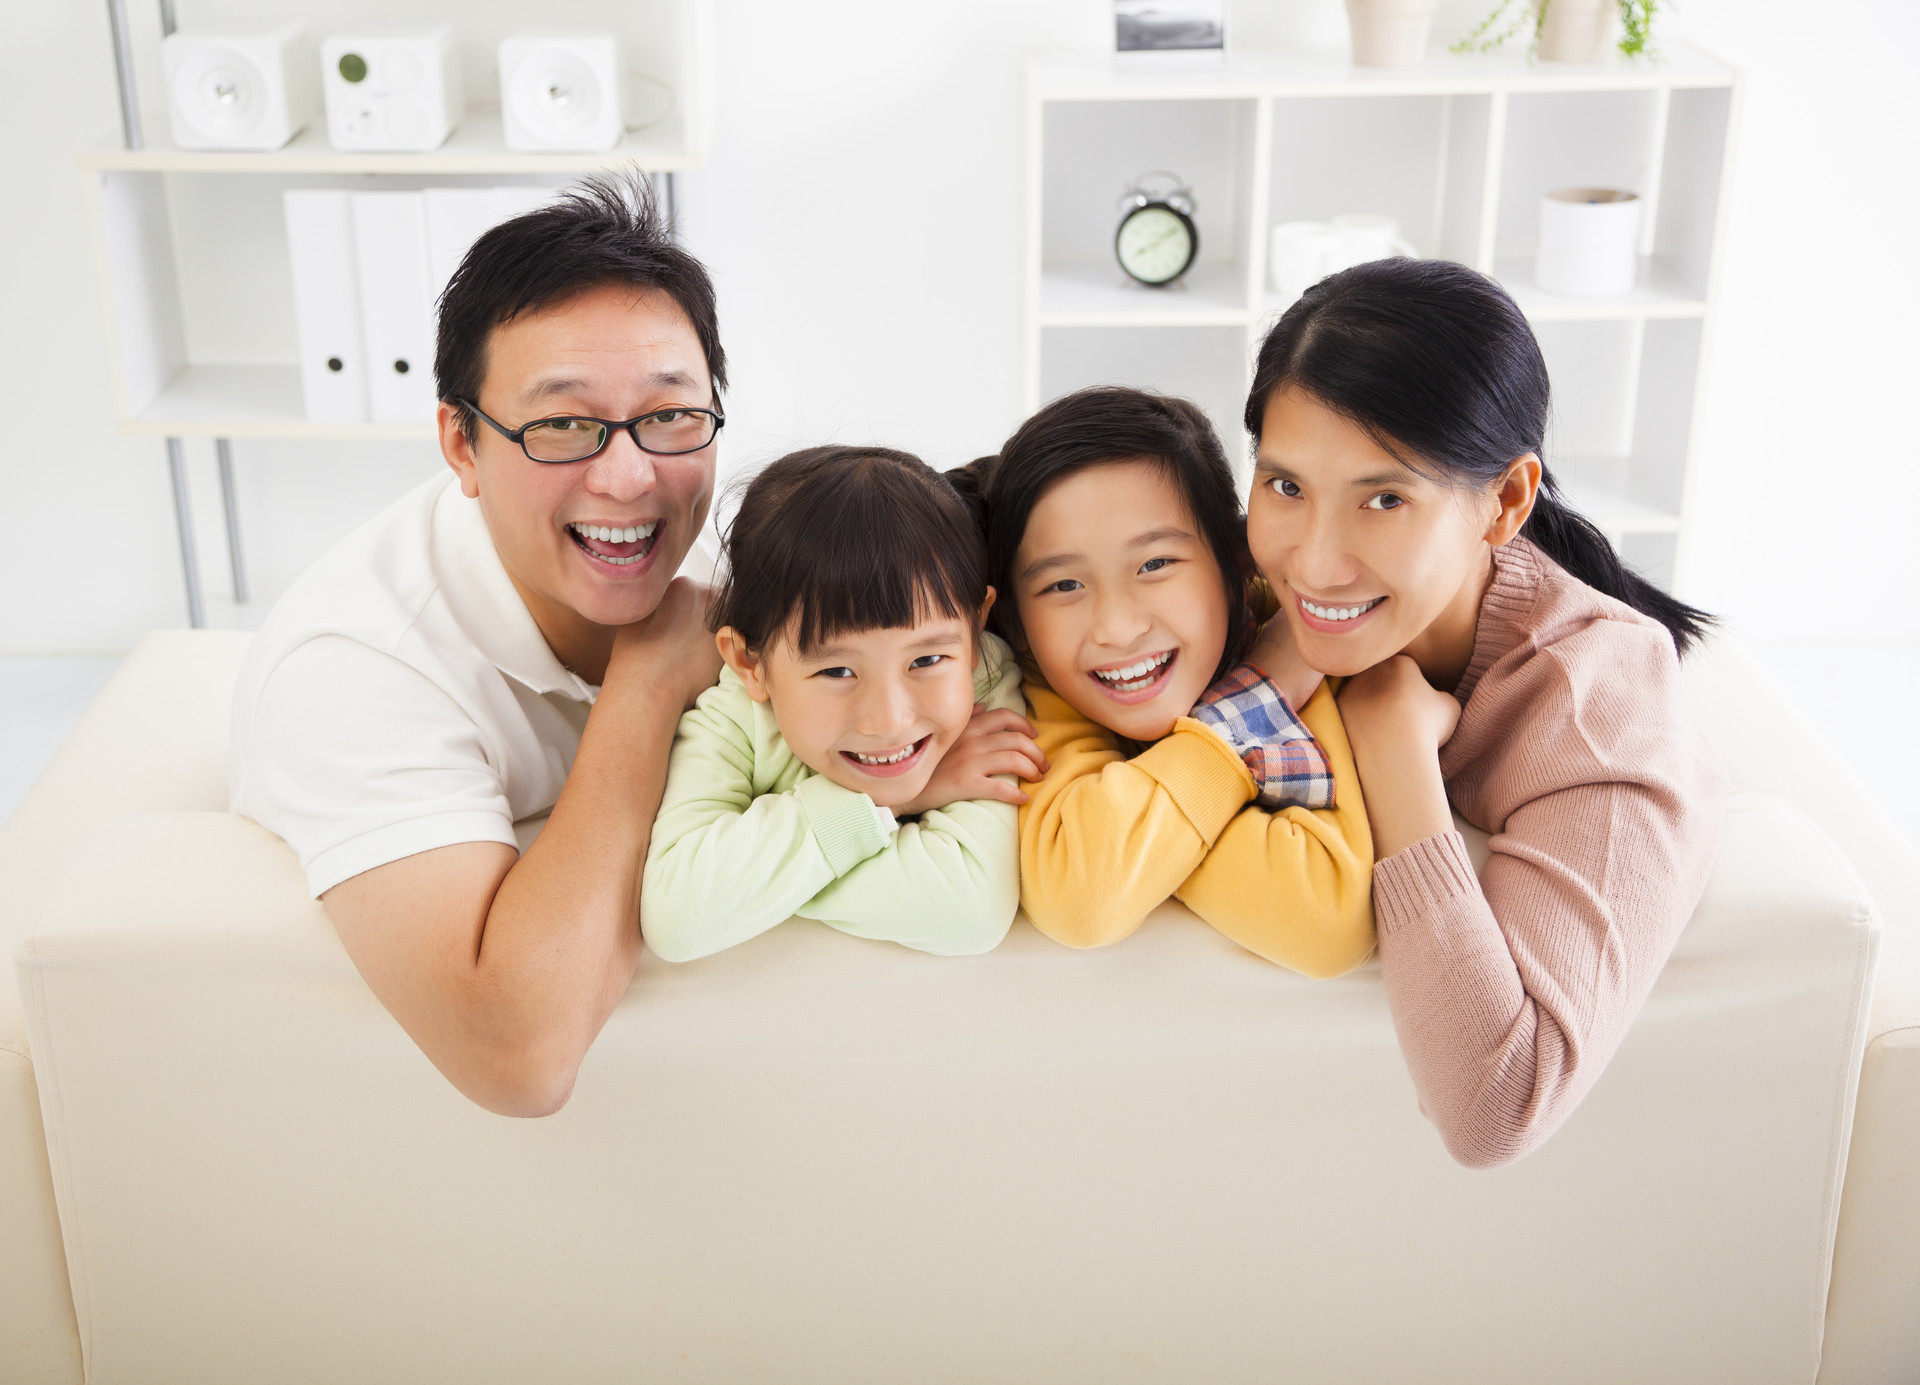 bigstock-Happy-Asian-Family-In-The-Livi-77215217.jpg